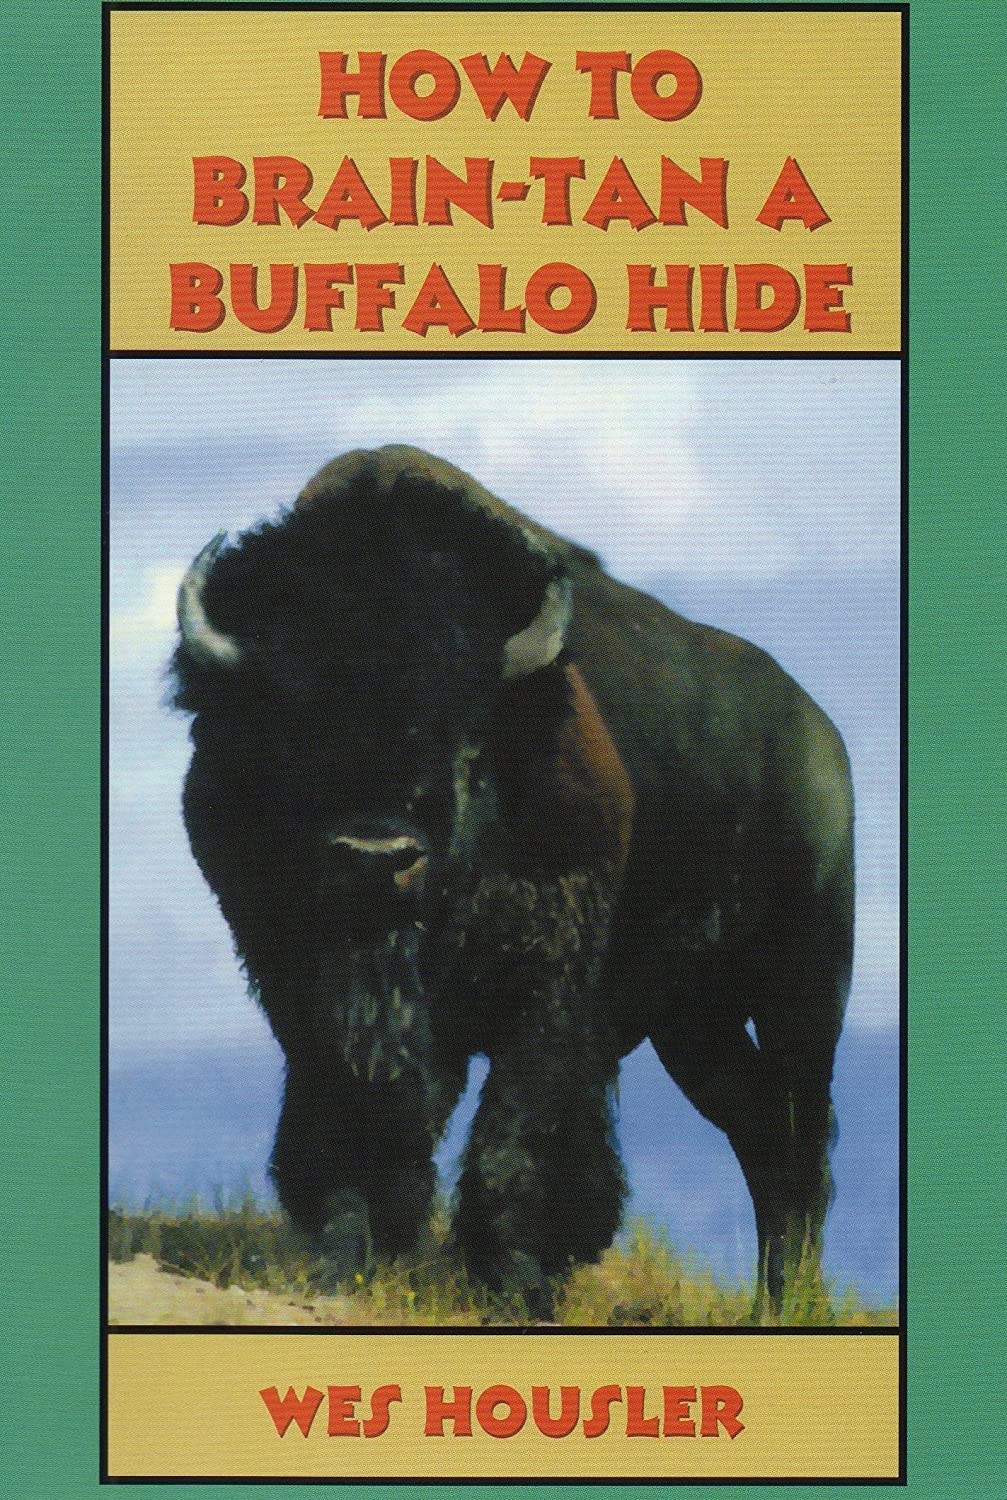 How to Brain-Tan a Buffalo Hide by Wes Housler